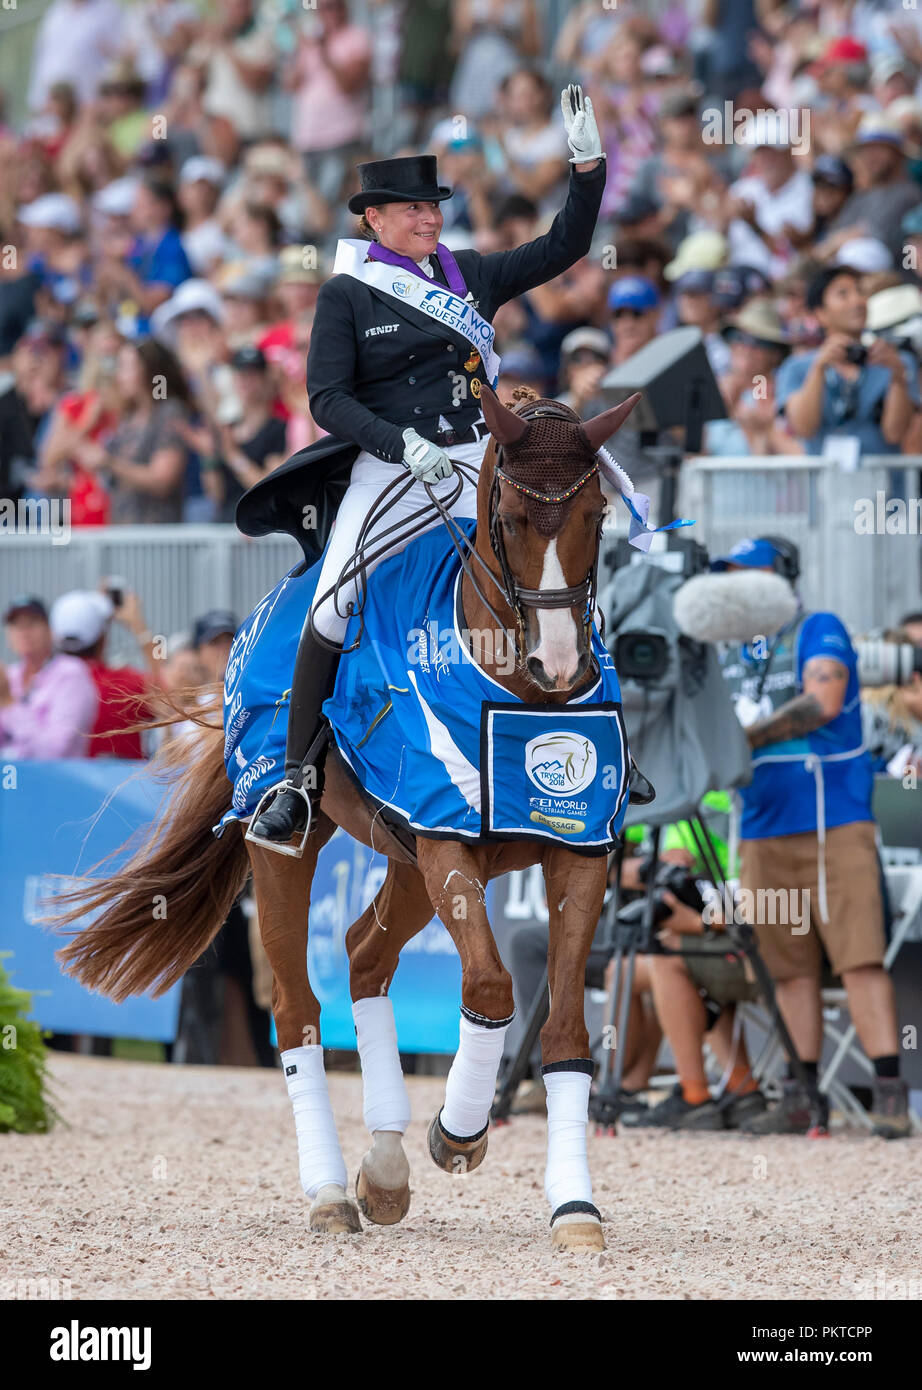 Tryon, USA. 14th Sep, 2018. Riding, FEI World Equestrian Game 2018, Grand Prix Special: Isabell Werth from Germany celebrates her victory at Bella Rose. Credit: Stefan Lafrentz/dpa/Alamy Live News - Stock Image